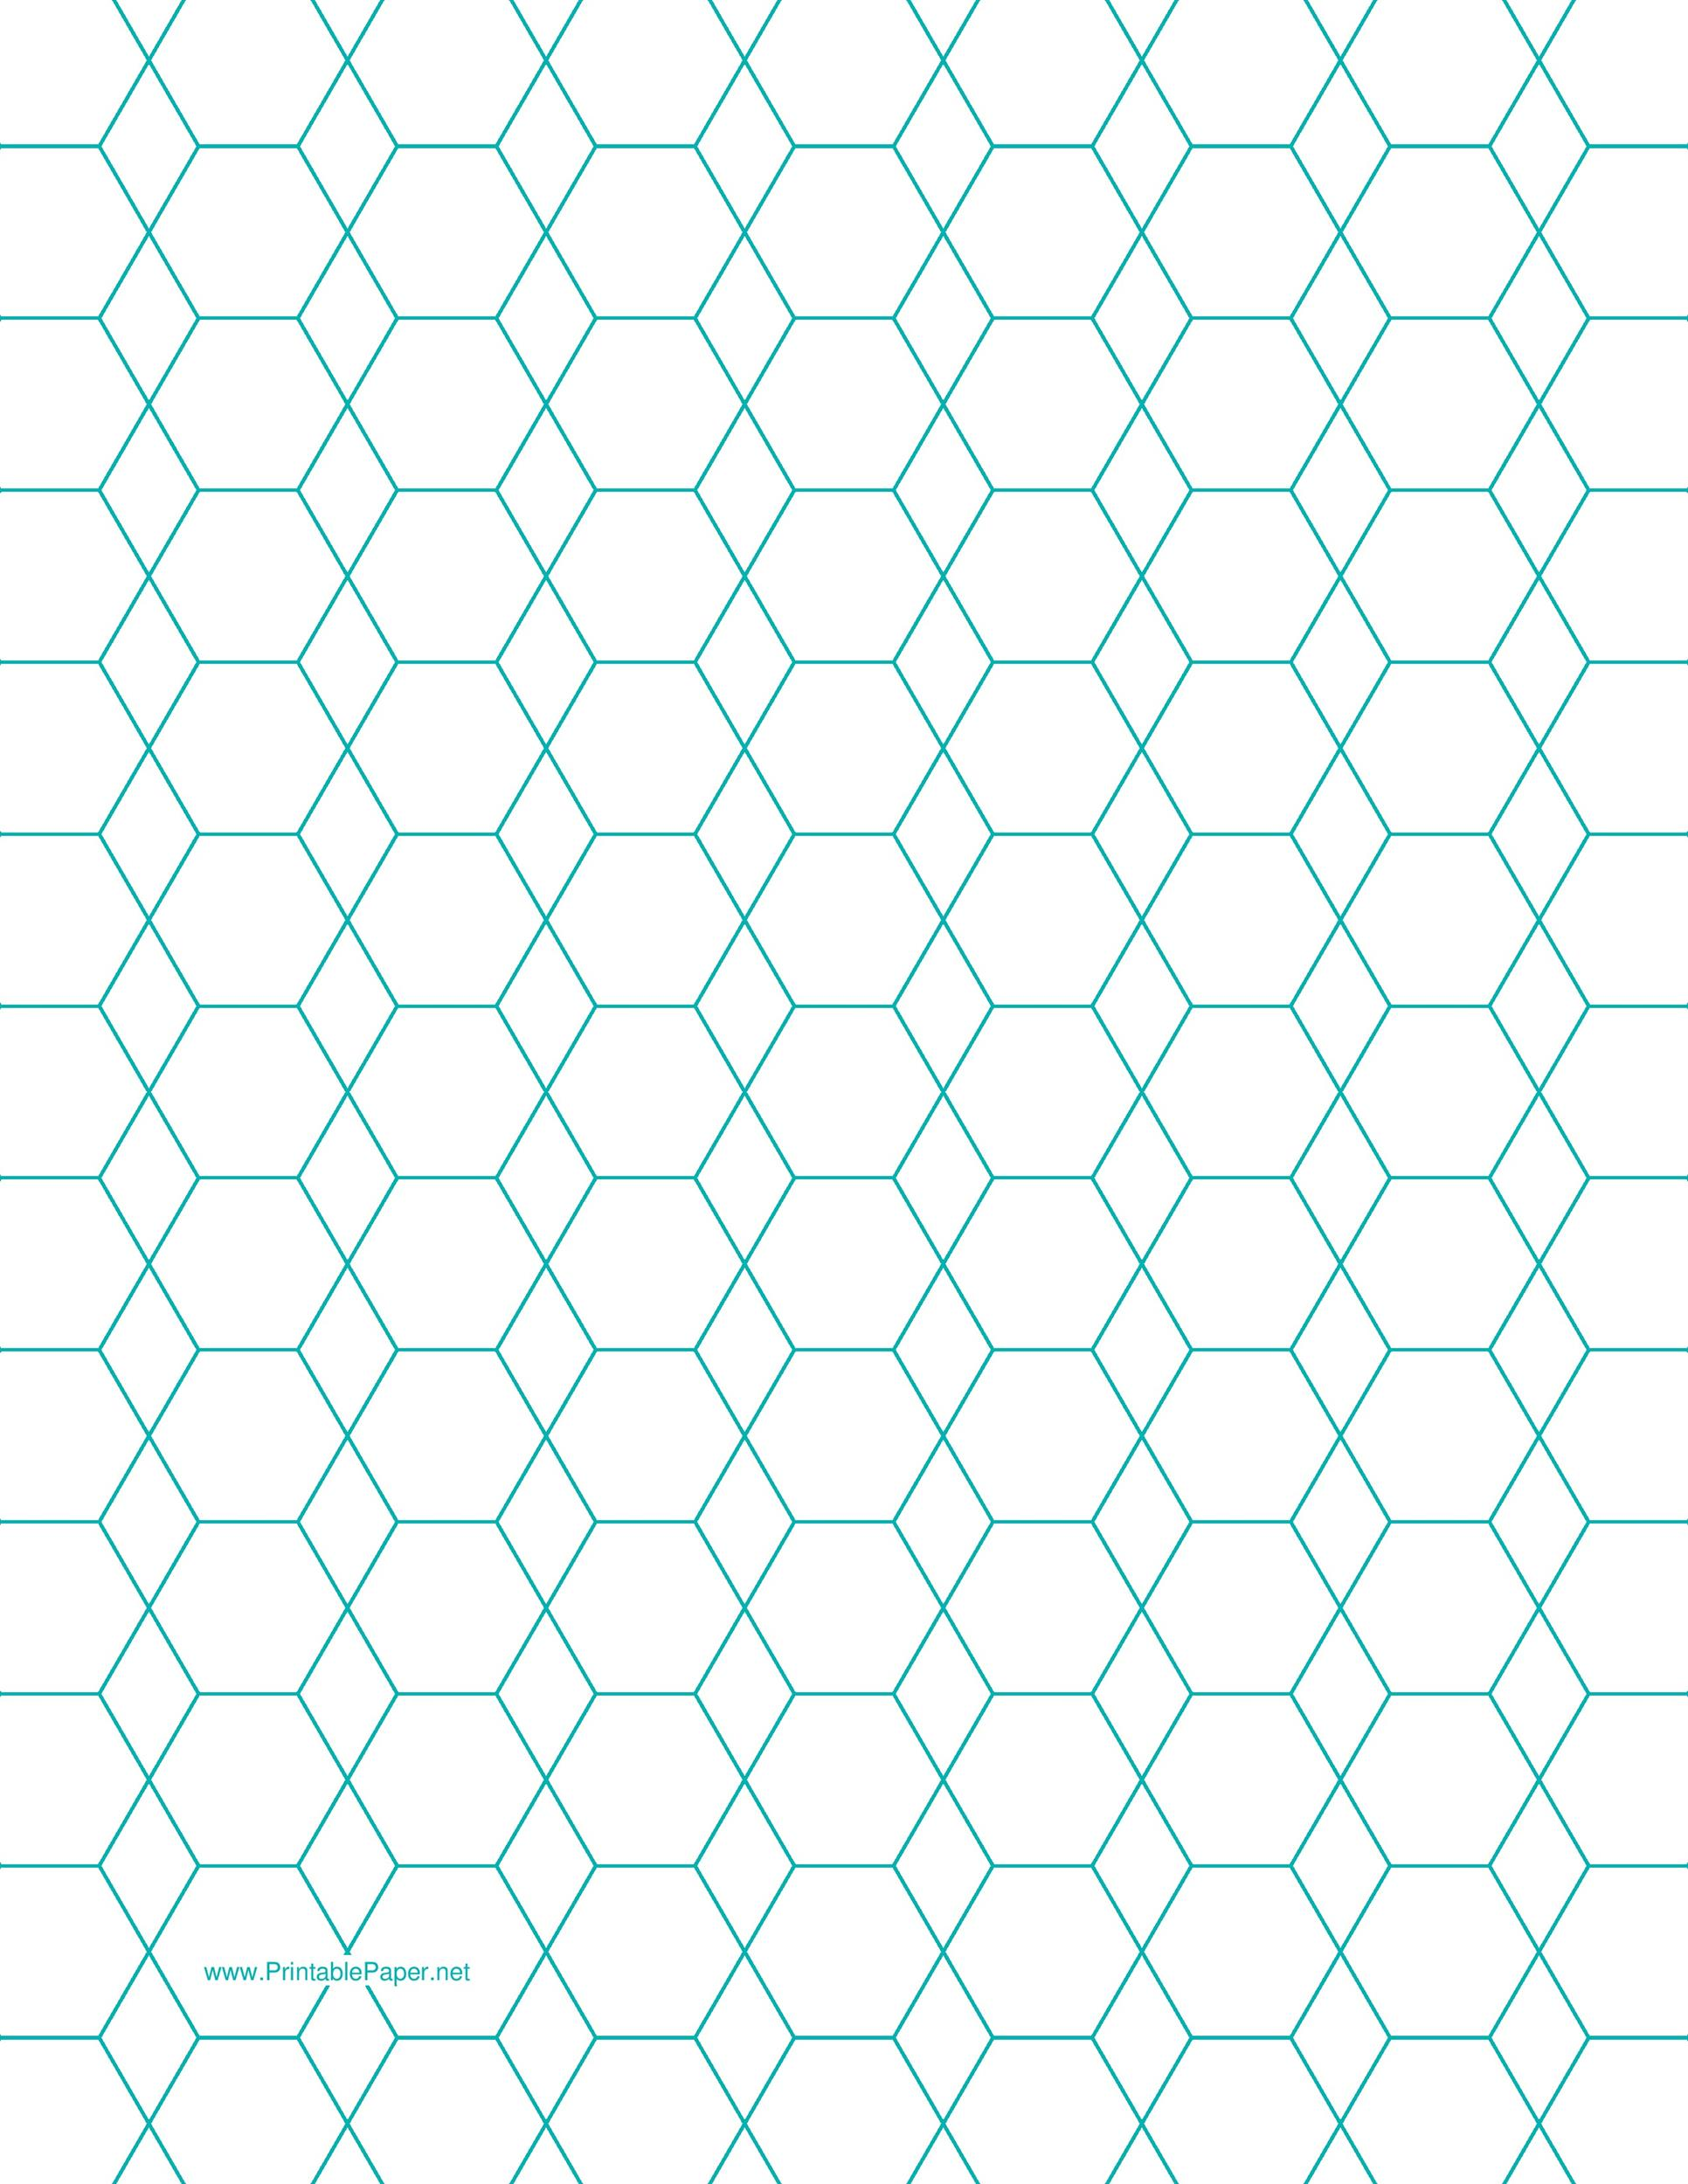 Hexagon Graph Paper Download .